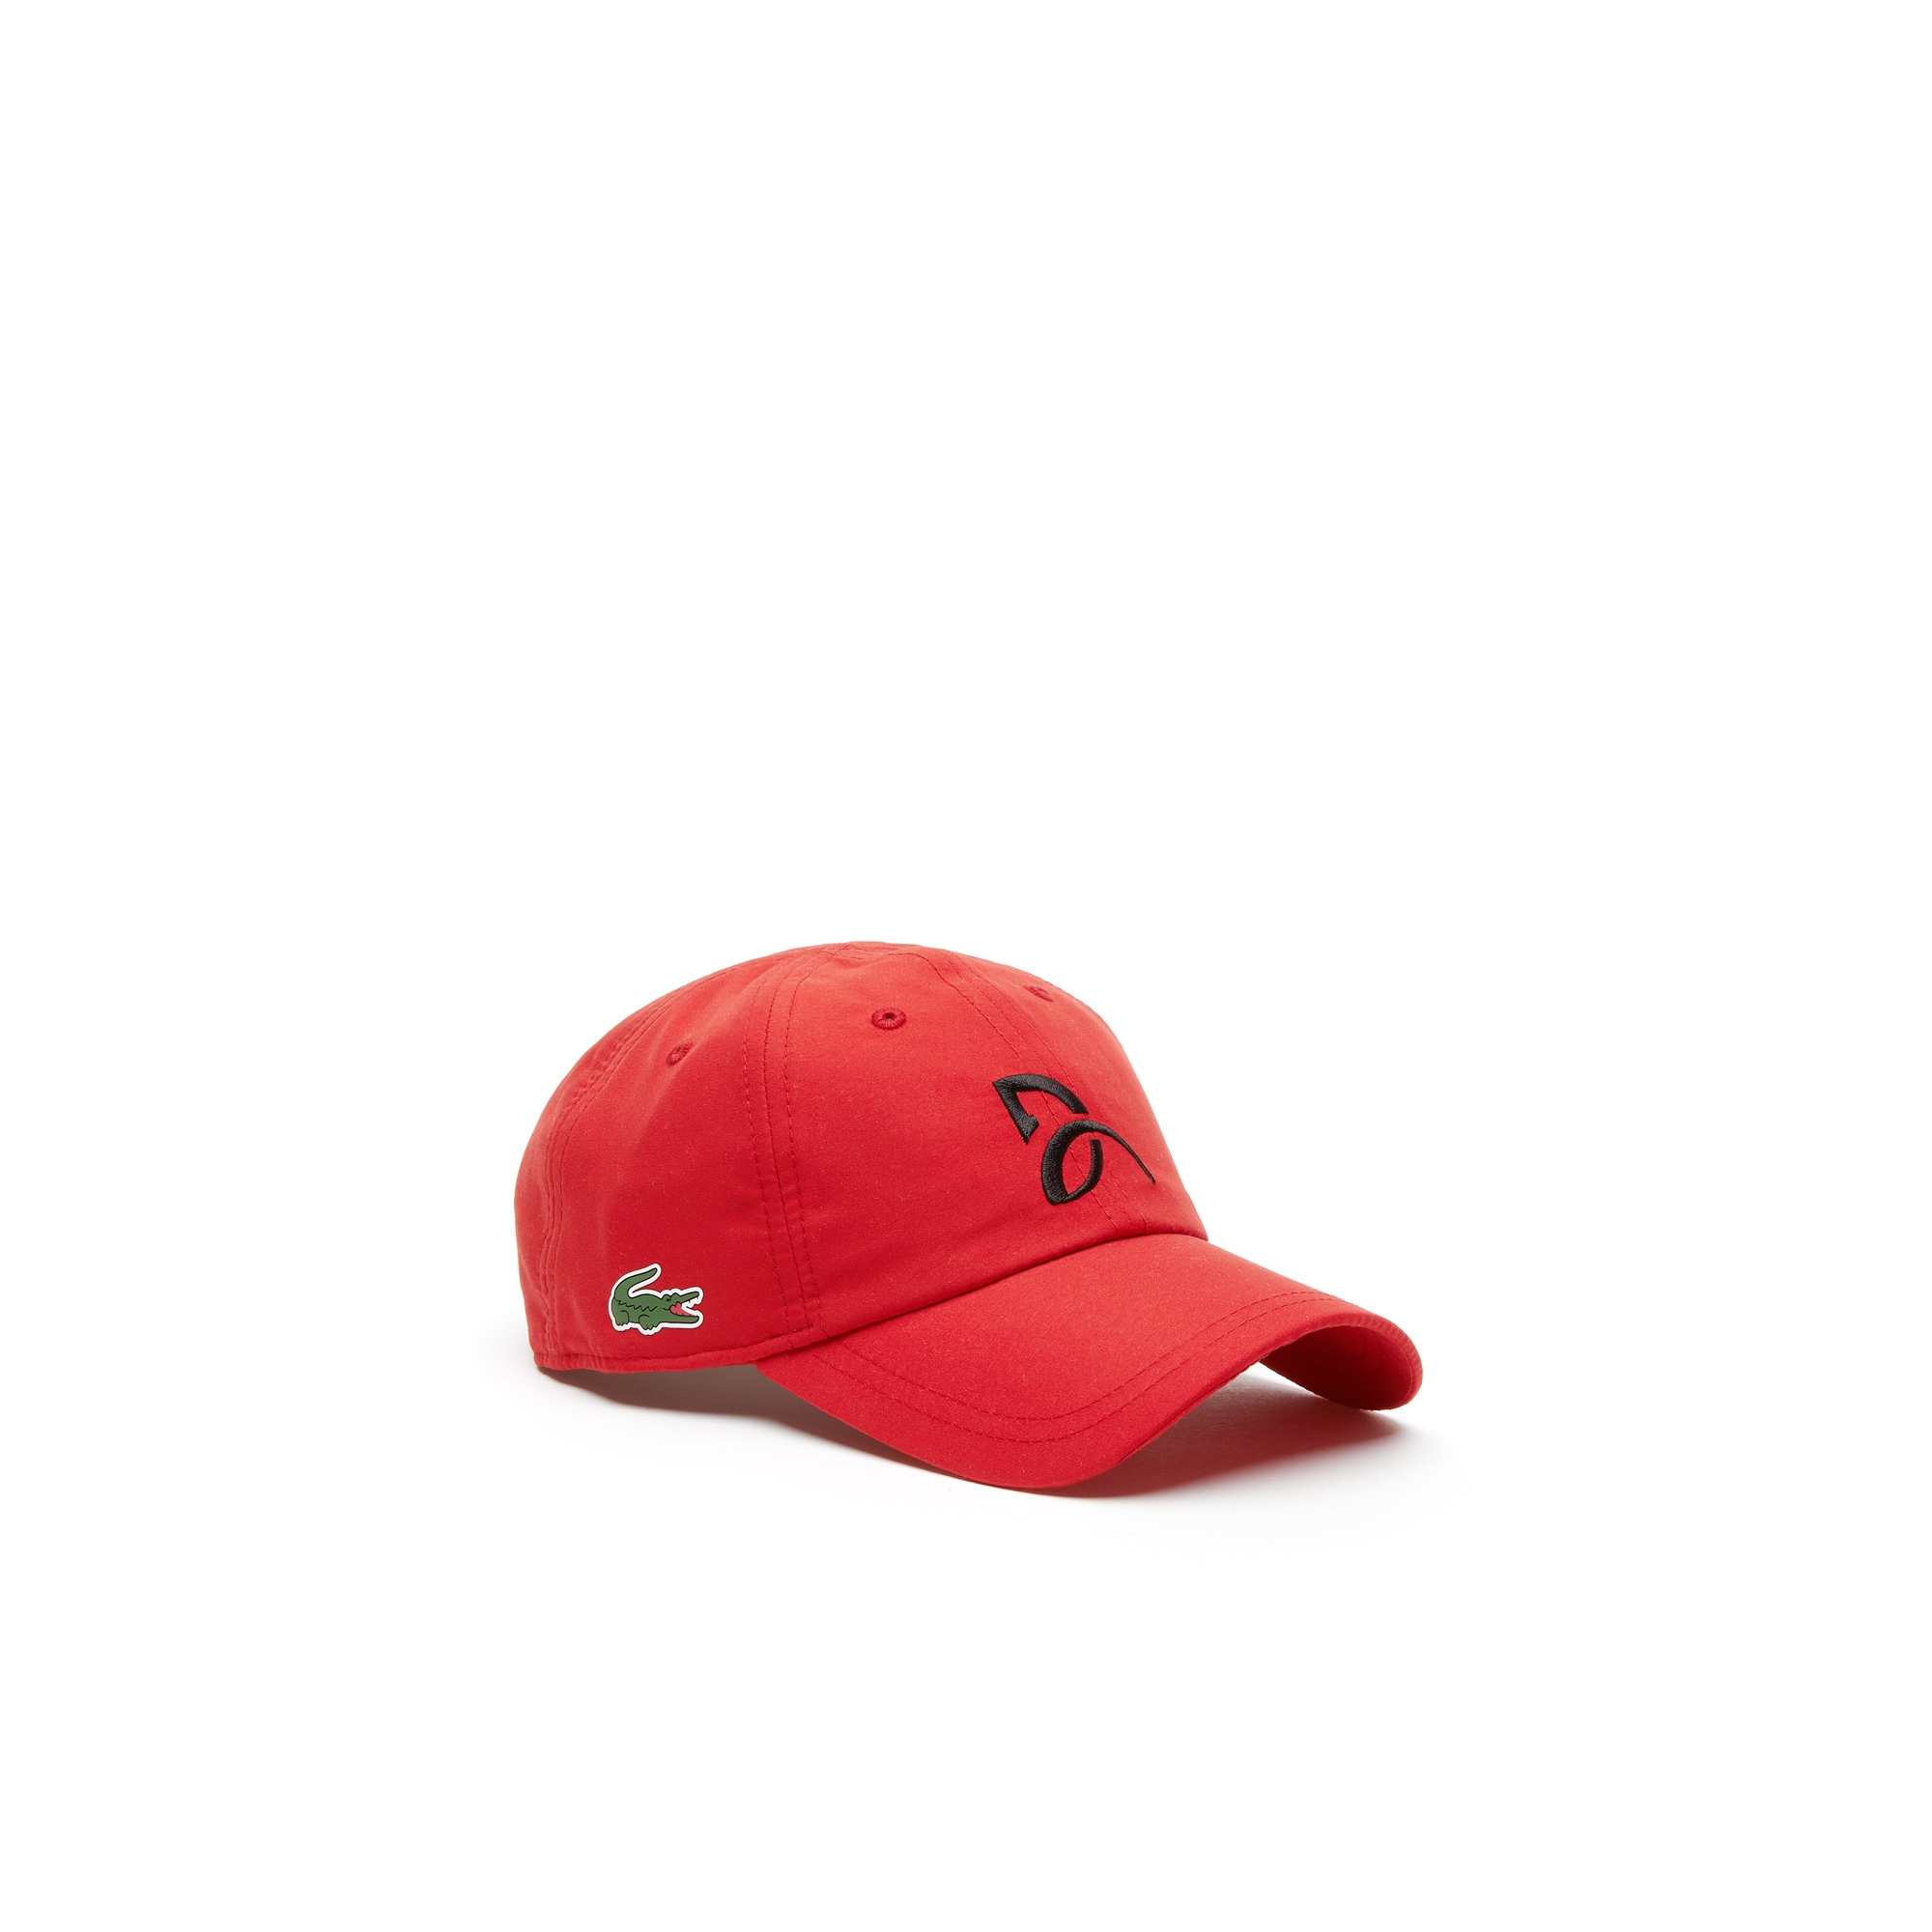 Men's Lacoste Sport Tennis Microfiber Cap - Support With Style Collection for Novak Djokovic